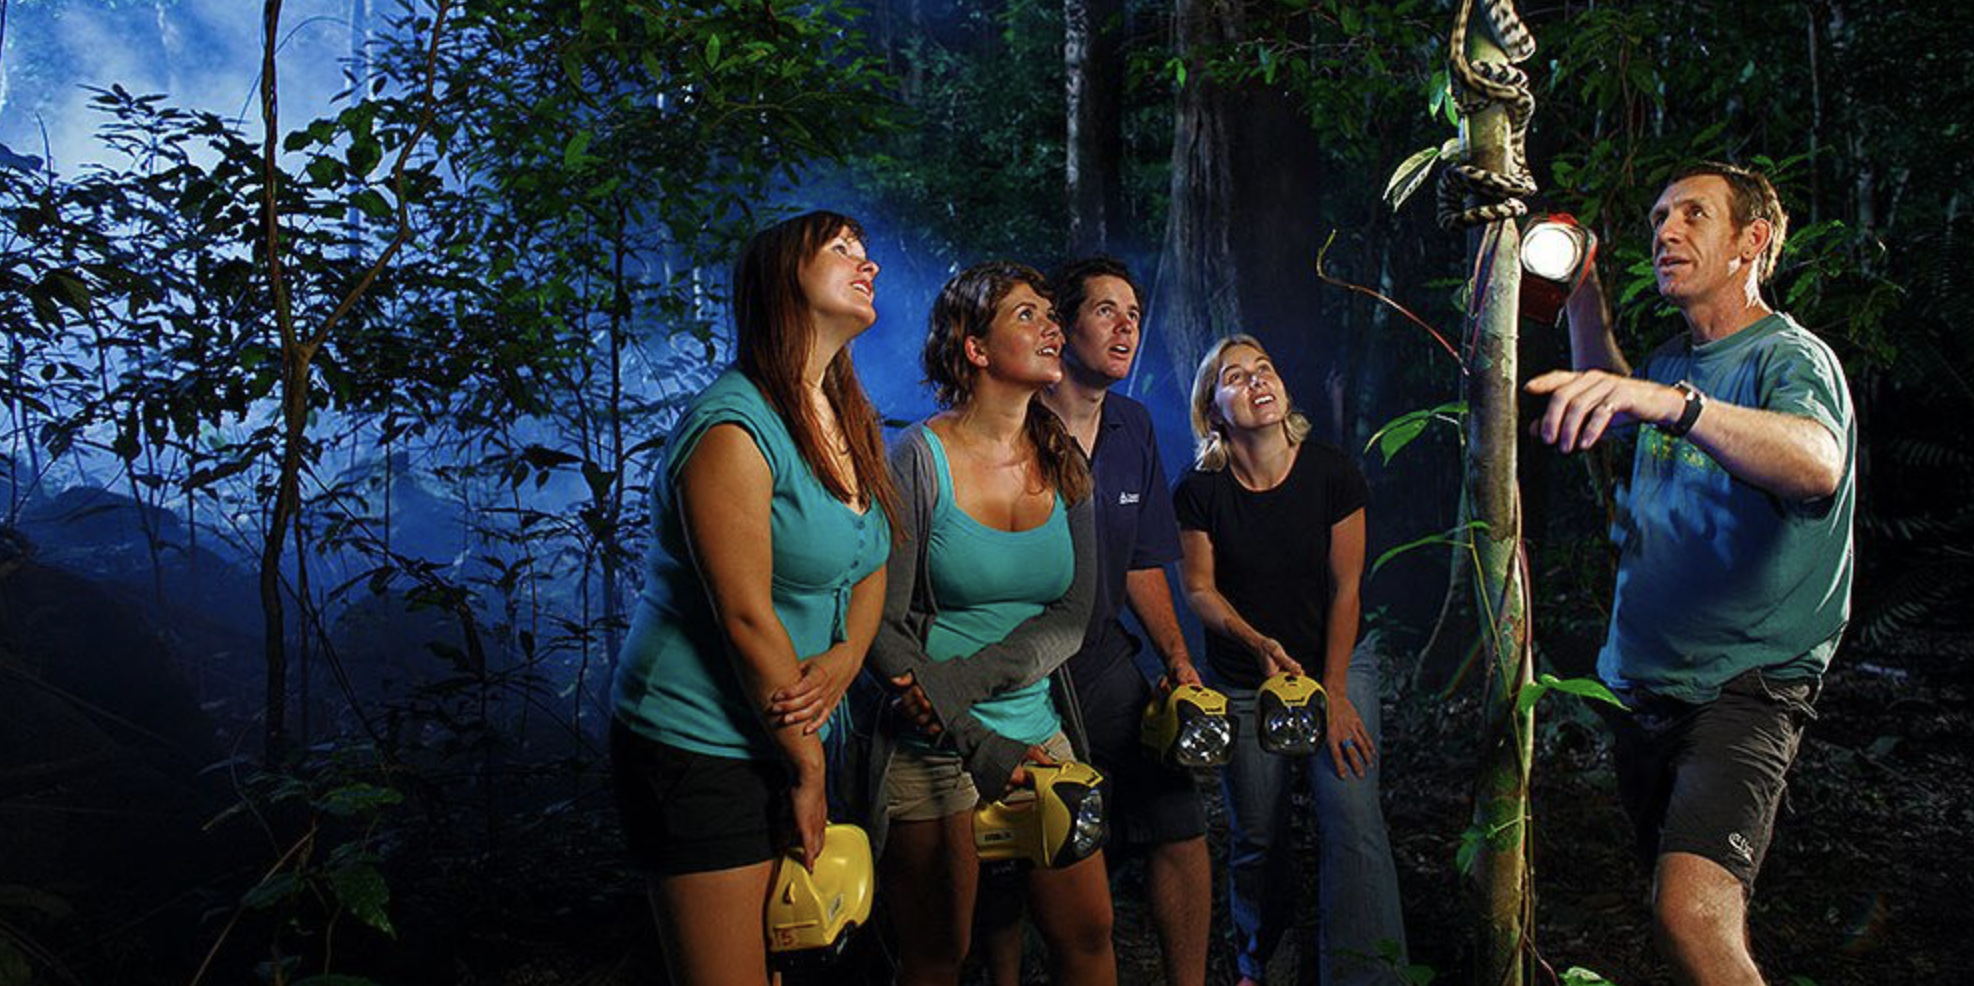 Jungle Adventure Night Walk - $34.63/ppAt Jungle Adventures they don't need to build you a time machine; they'll just give you a torch and take you to a world little changed in 120 million years! There are no sounds of the city, just inky blackness and the pulse of the rainforest as it chirps, trickles, rustles and breathes.The small group interpretive tours take a maximum of eleven people per guide deep into our ancient forest to experience the nocturnal world. It's a singing, bustling world, far removed from man's dominance over the earth, and they'll introduce you to a weird and wonderful cast of characters who live together to create this grand circle of life.In addition to our frequent sightings of sleeping birds and rainforest dragons, they regularly encounter forest mammals including bats and possums, many species of spiders and insects plus beautiful snakes including amethystine and carpet pythons and brown tree snakes.